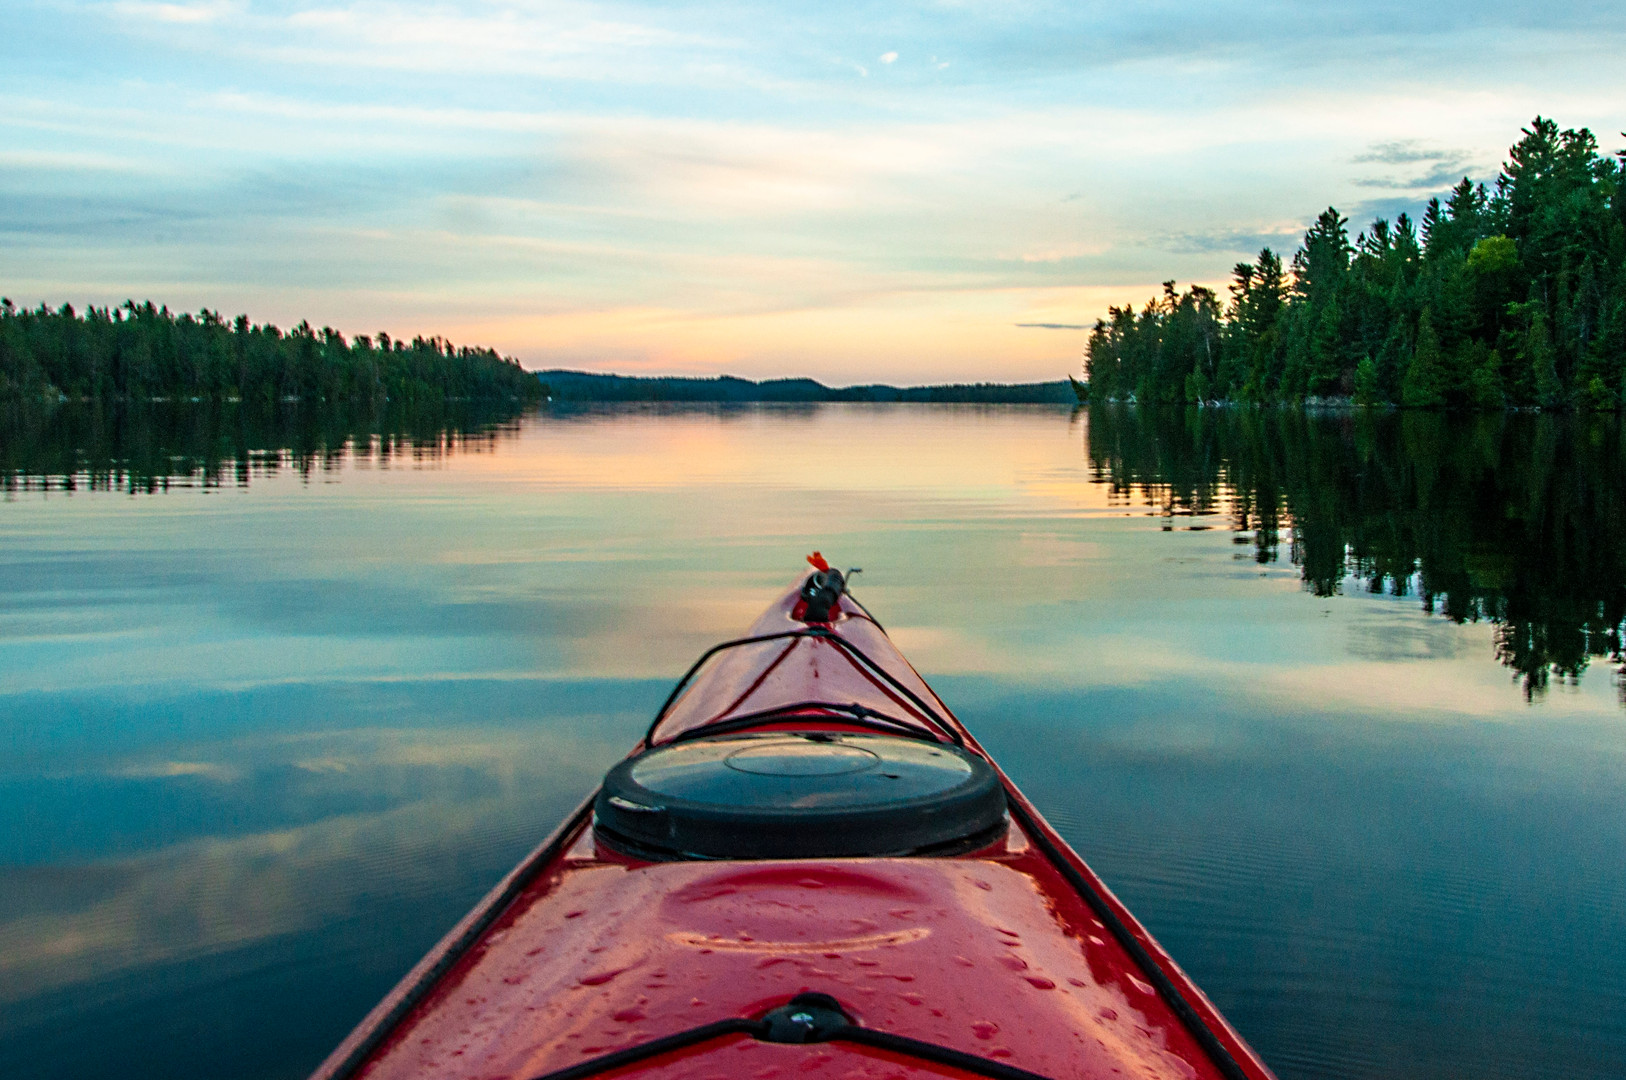 Tranquility of a summer evening paddle